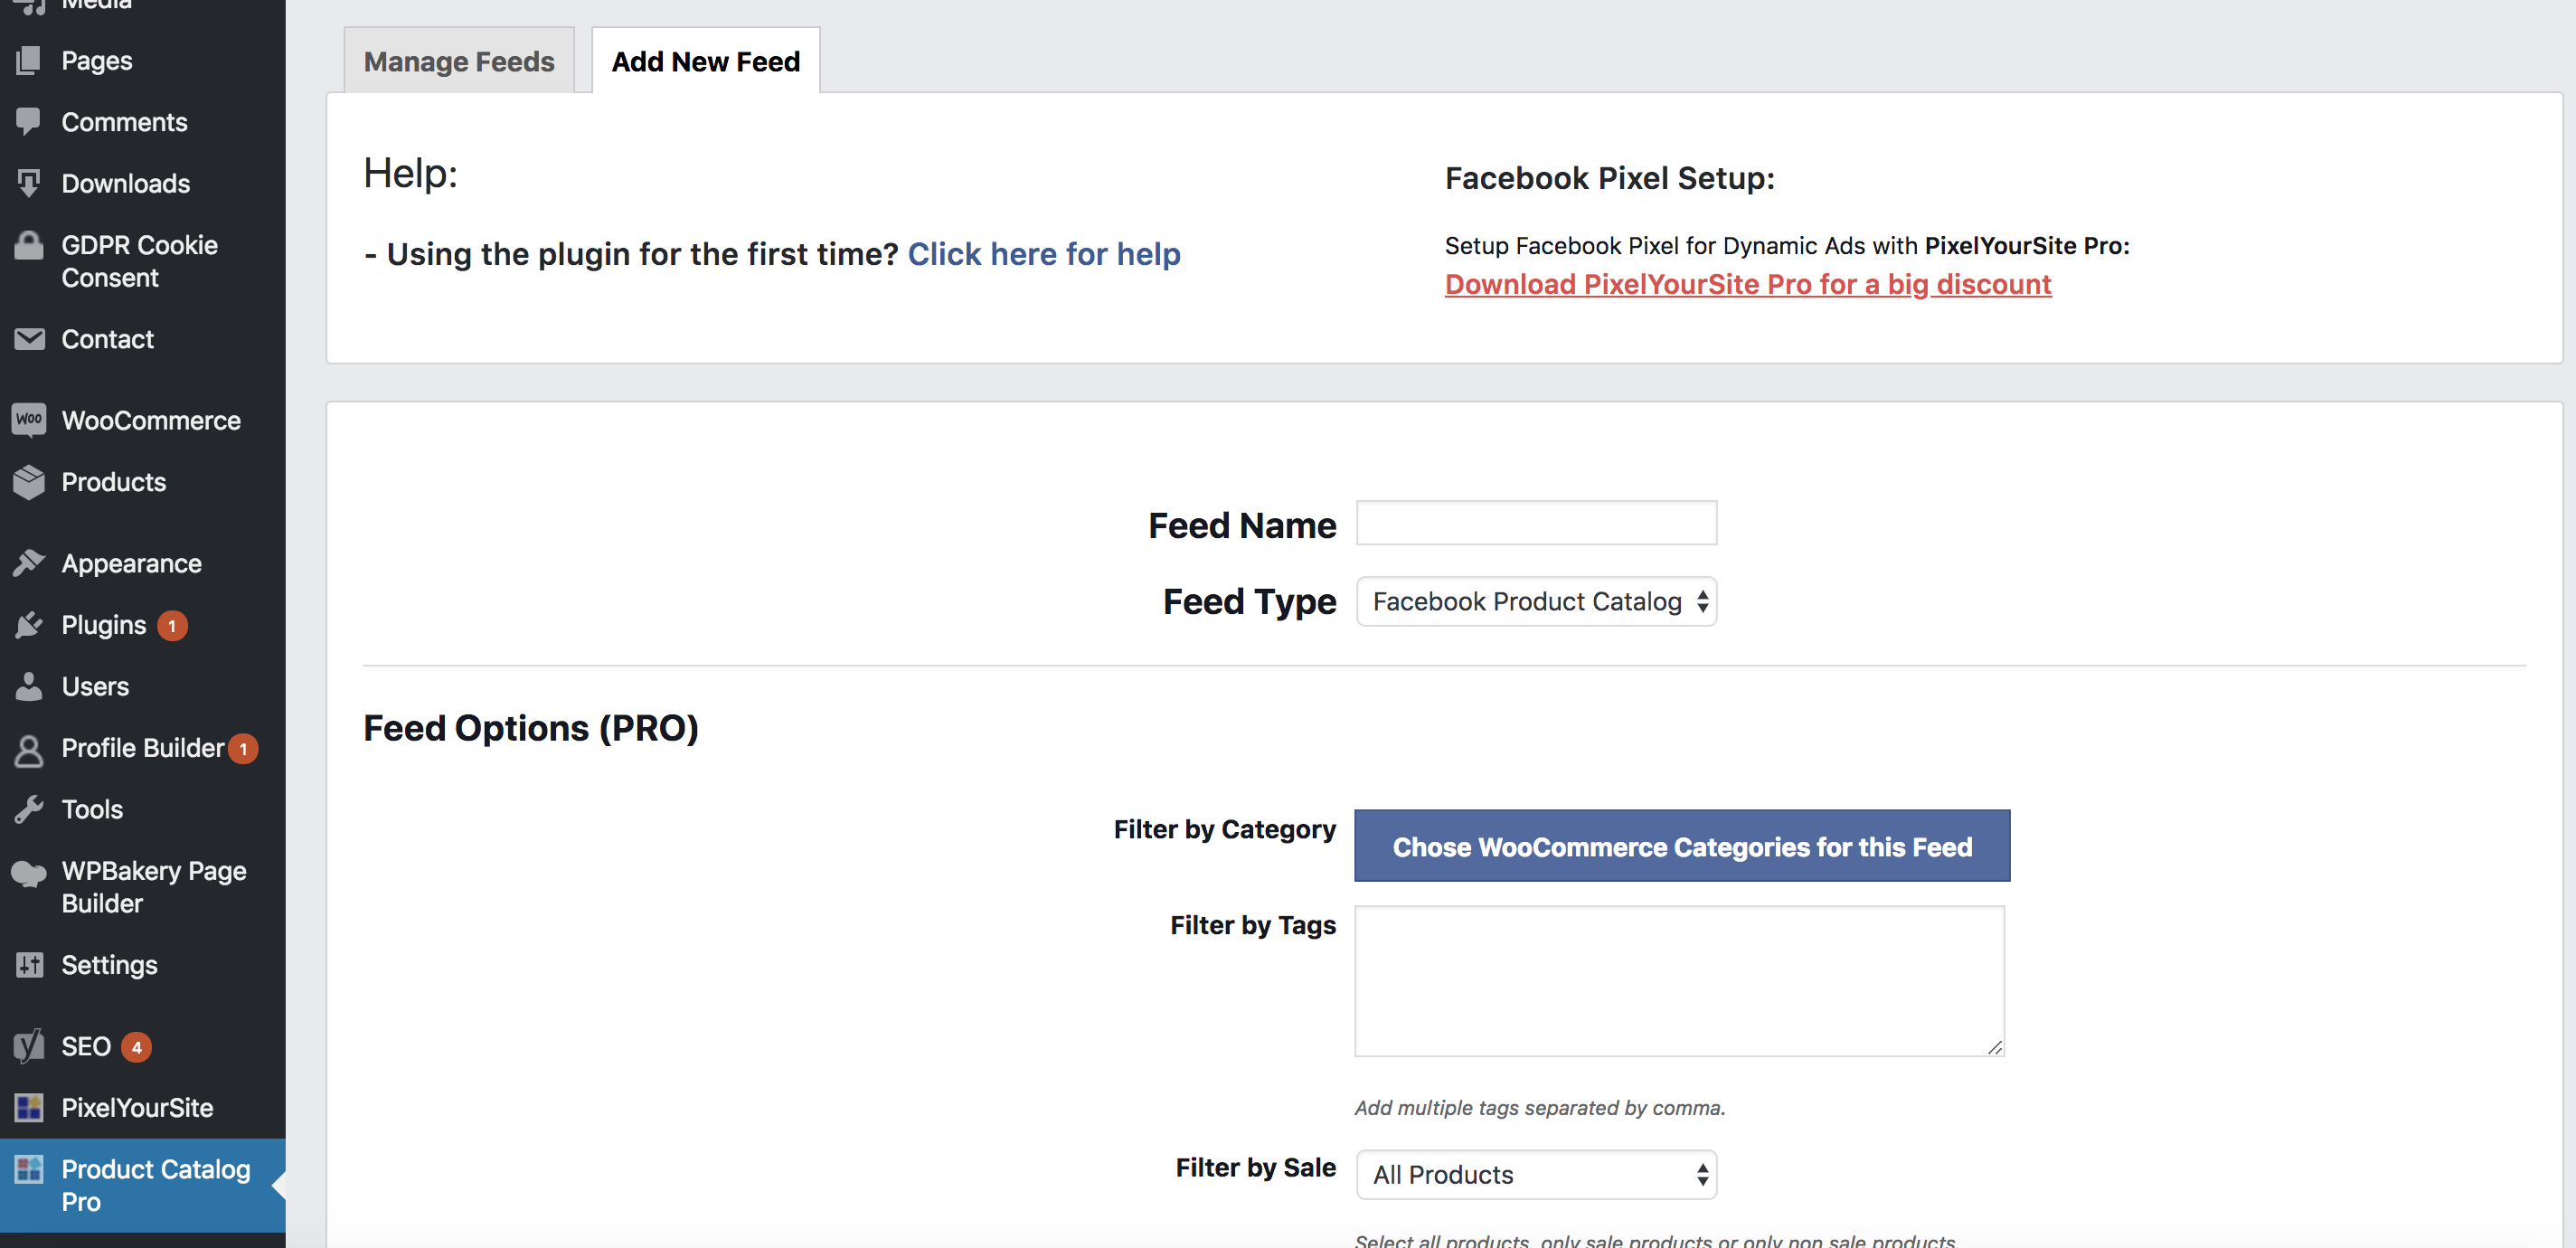 How to create a Facebook Product Catalog using a XML feed